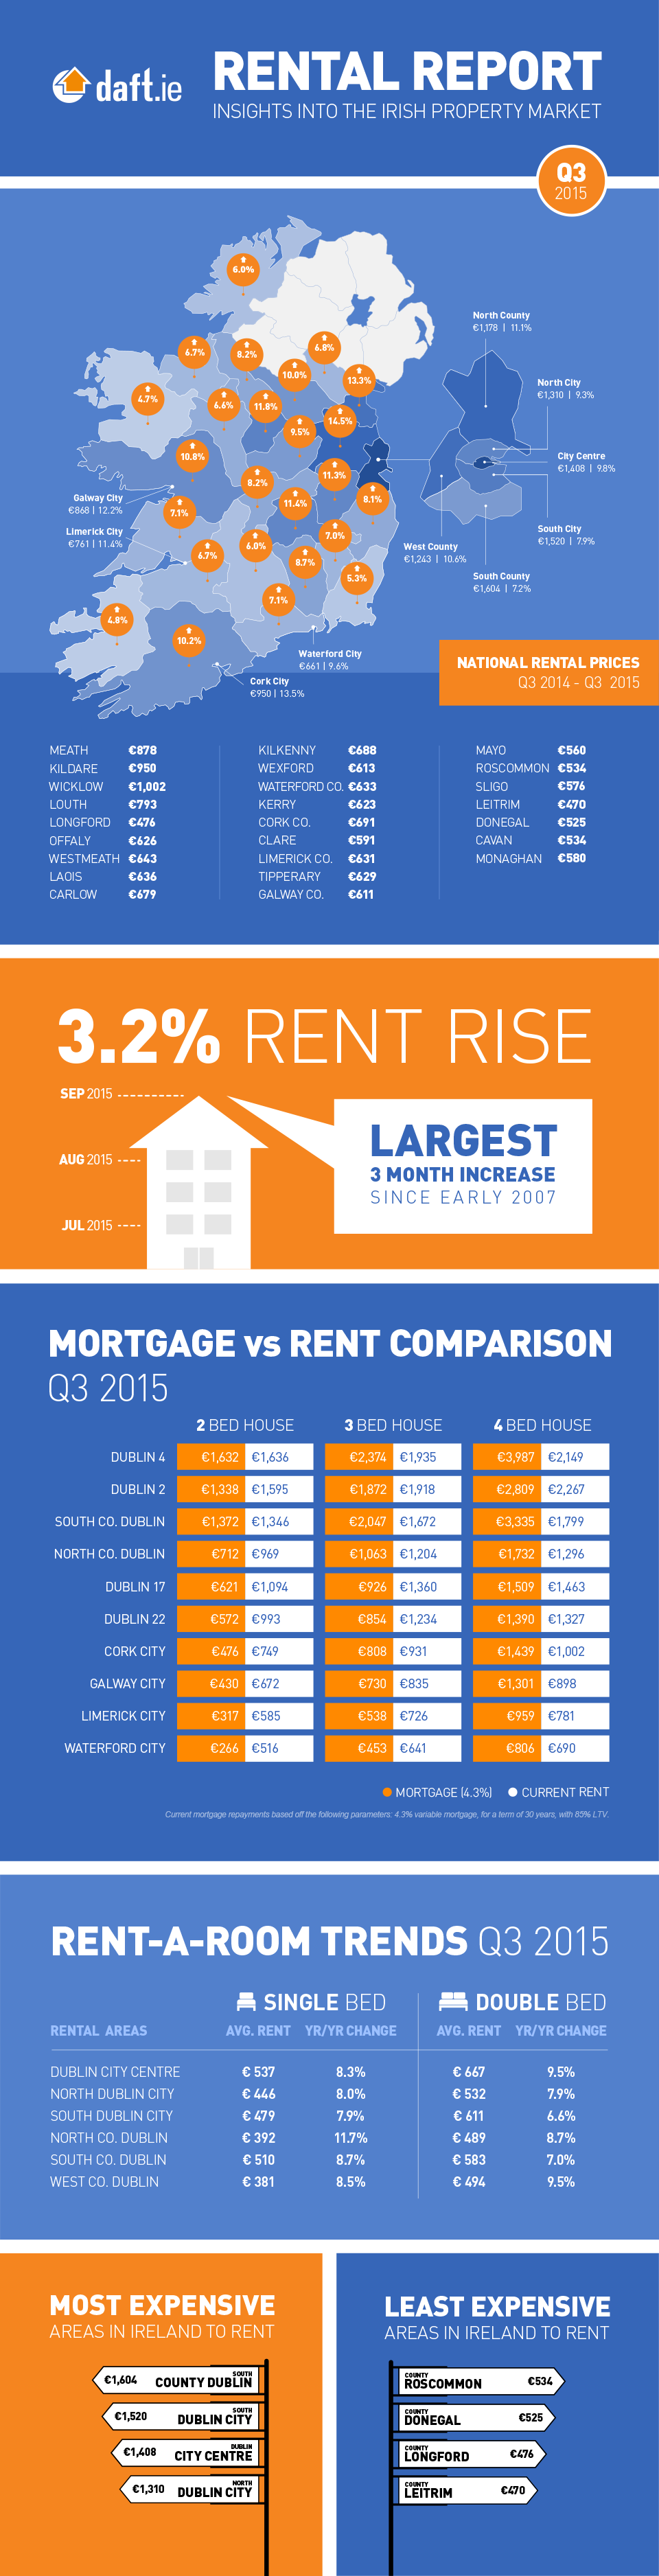 Daft.ie Rental Report: Q3 2015 Infographic